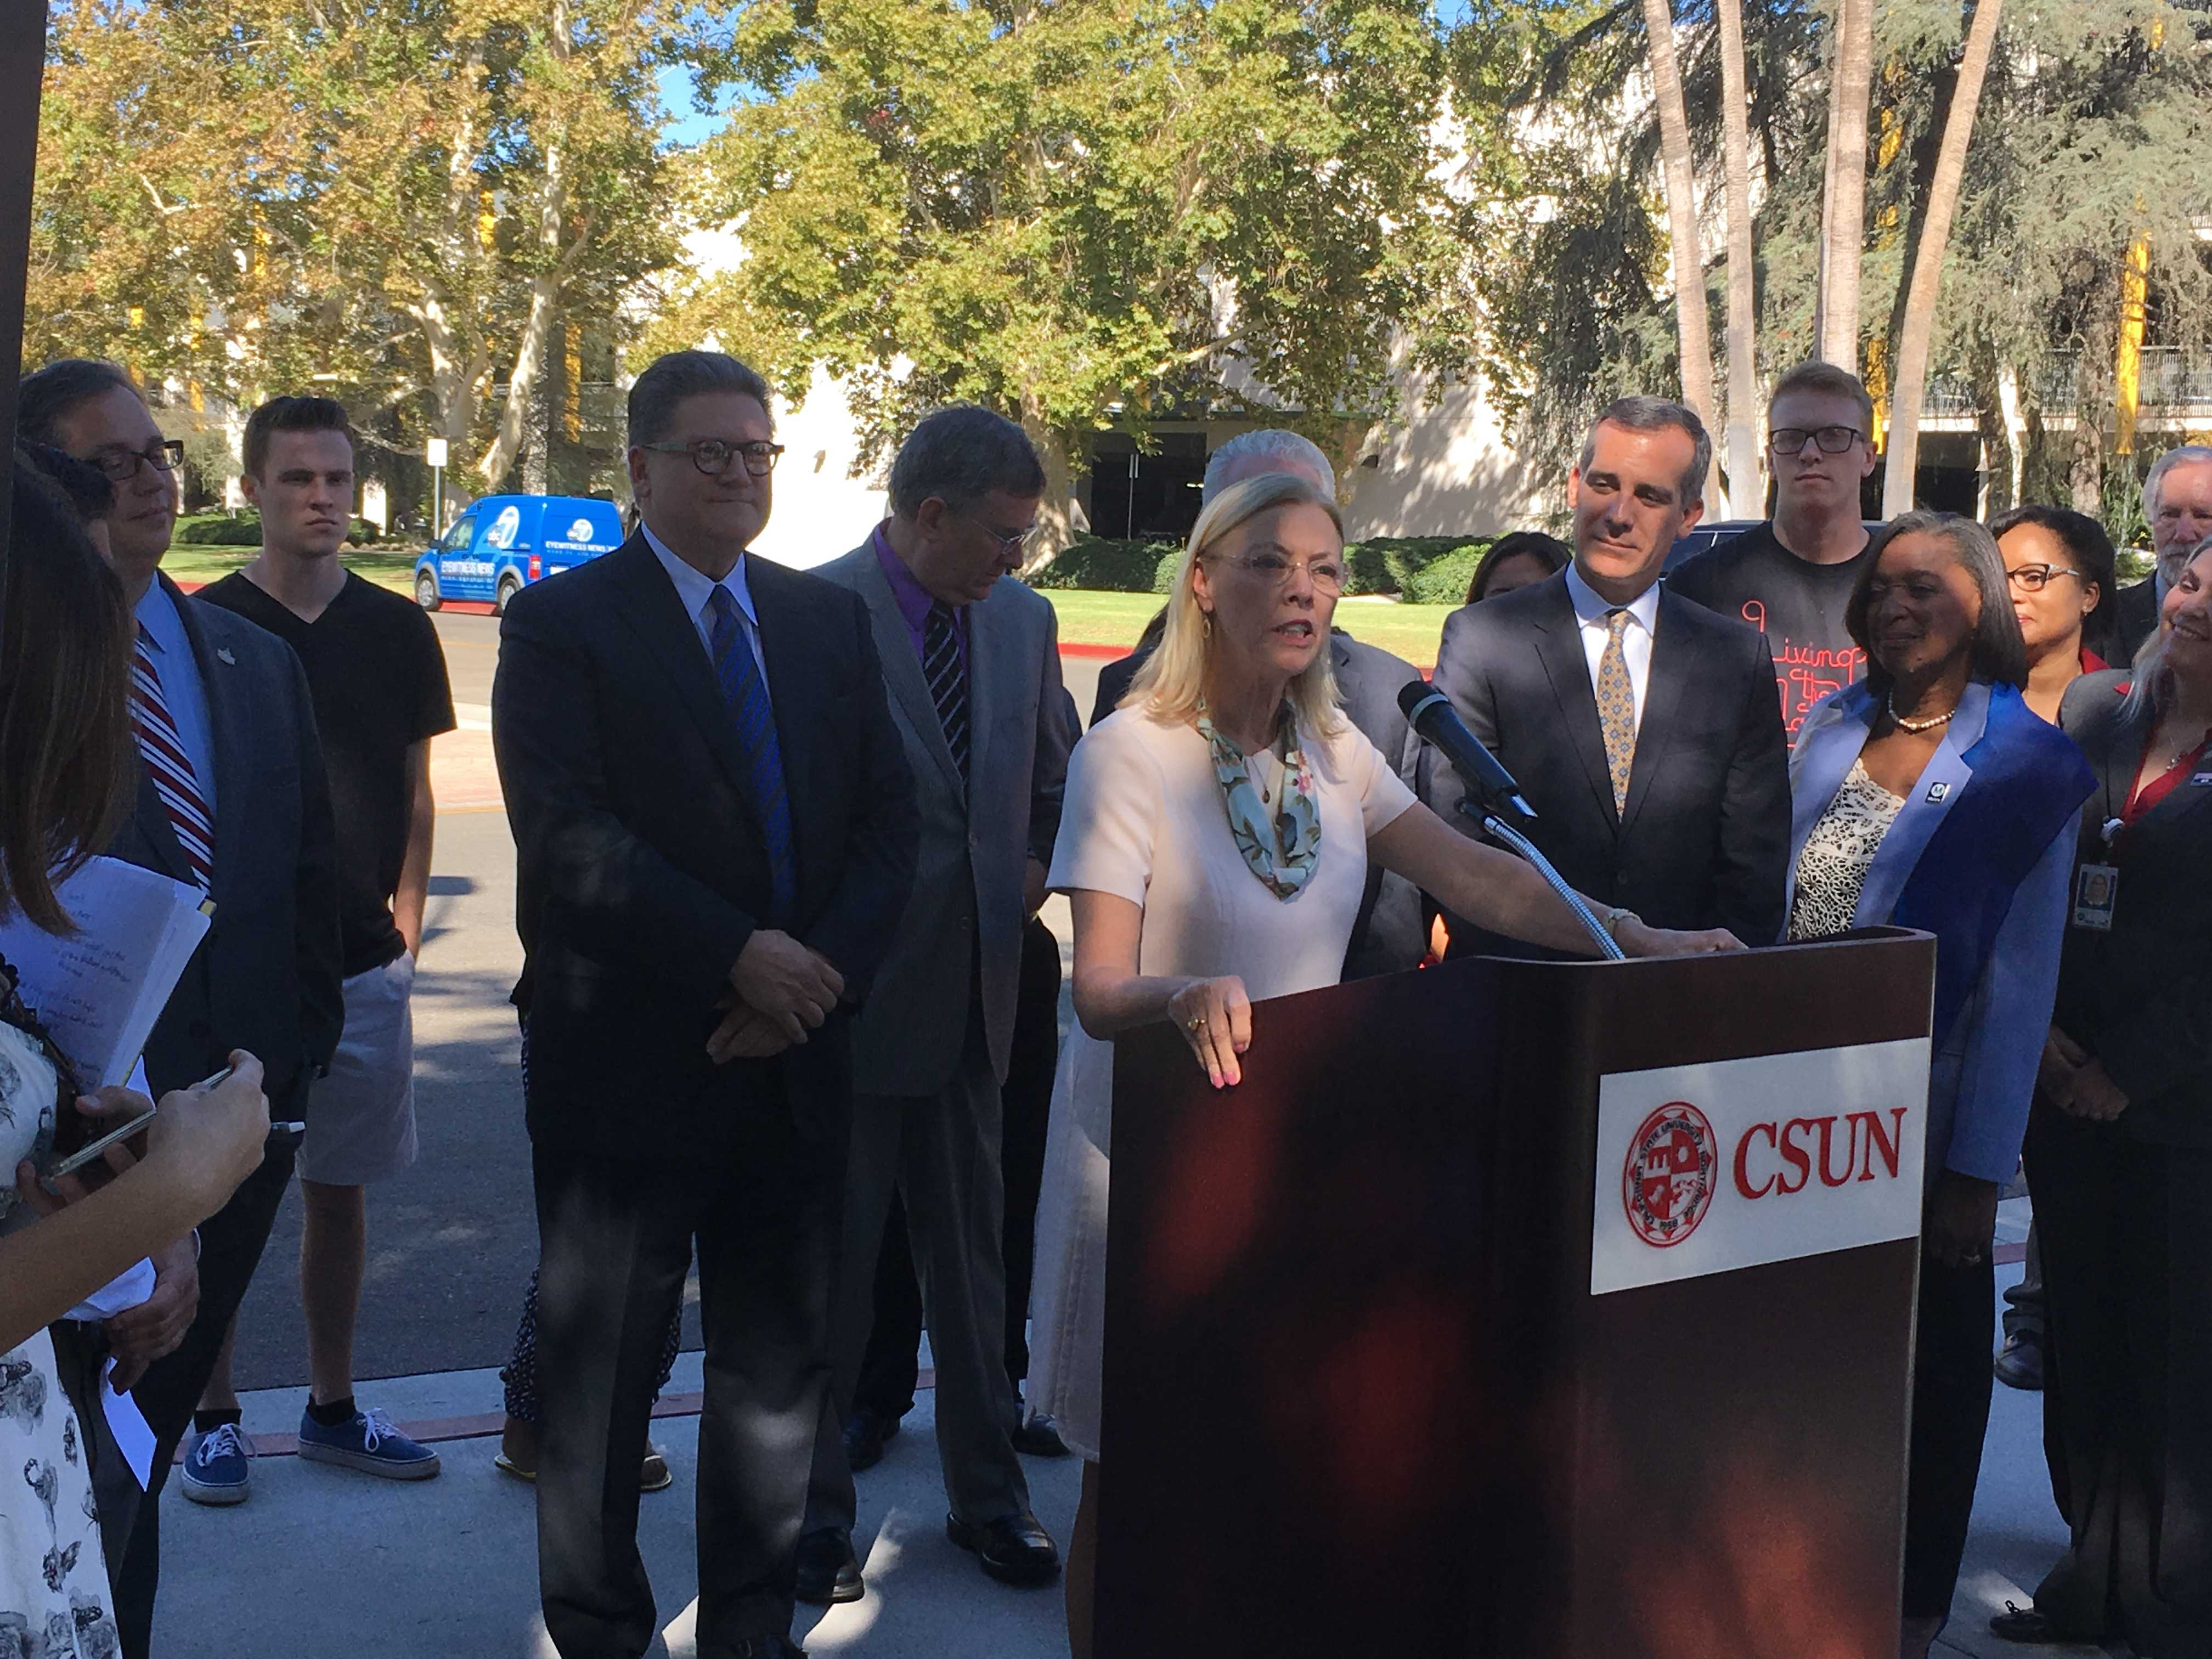 CSUN president speaks at podium